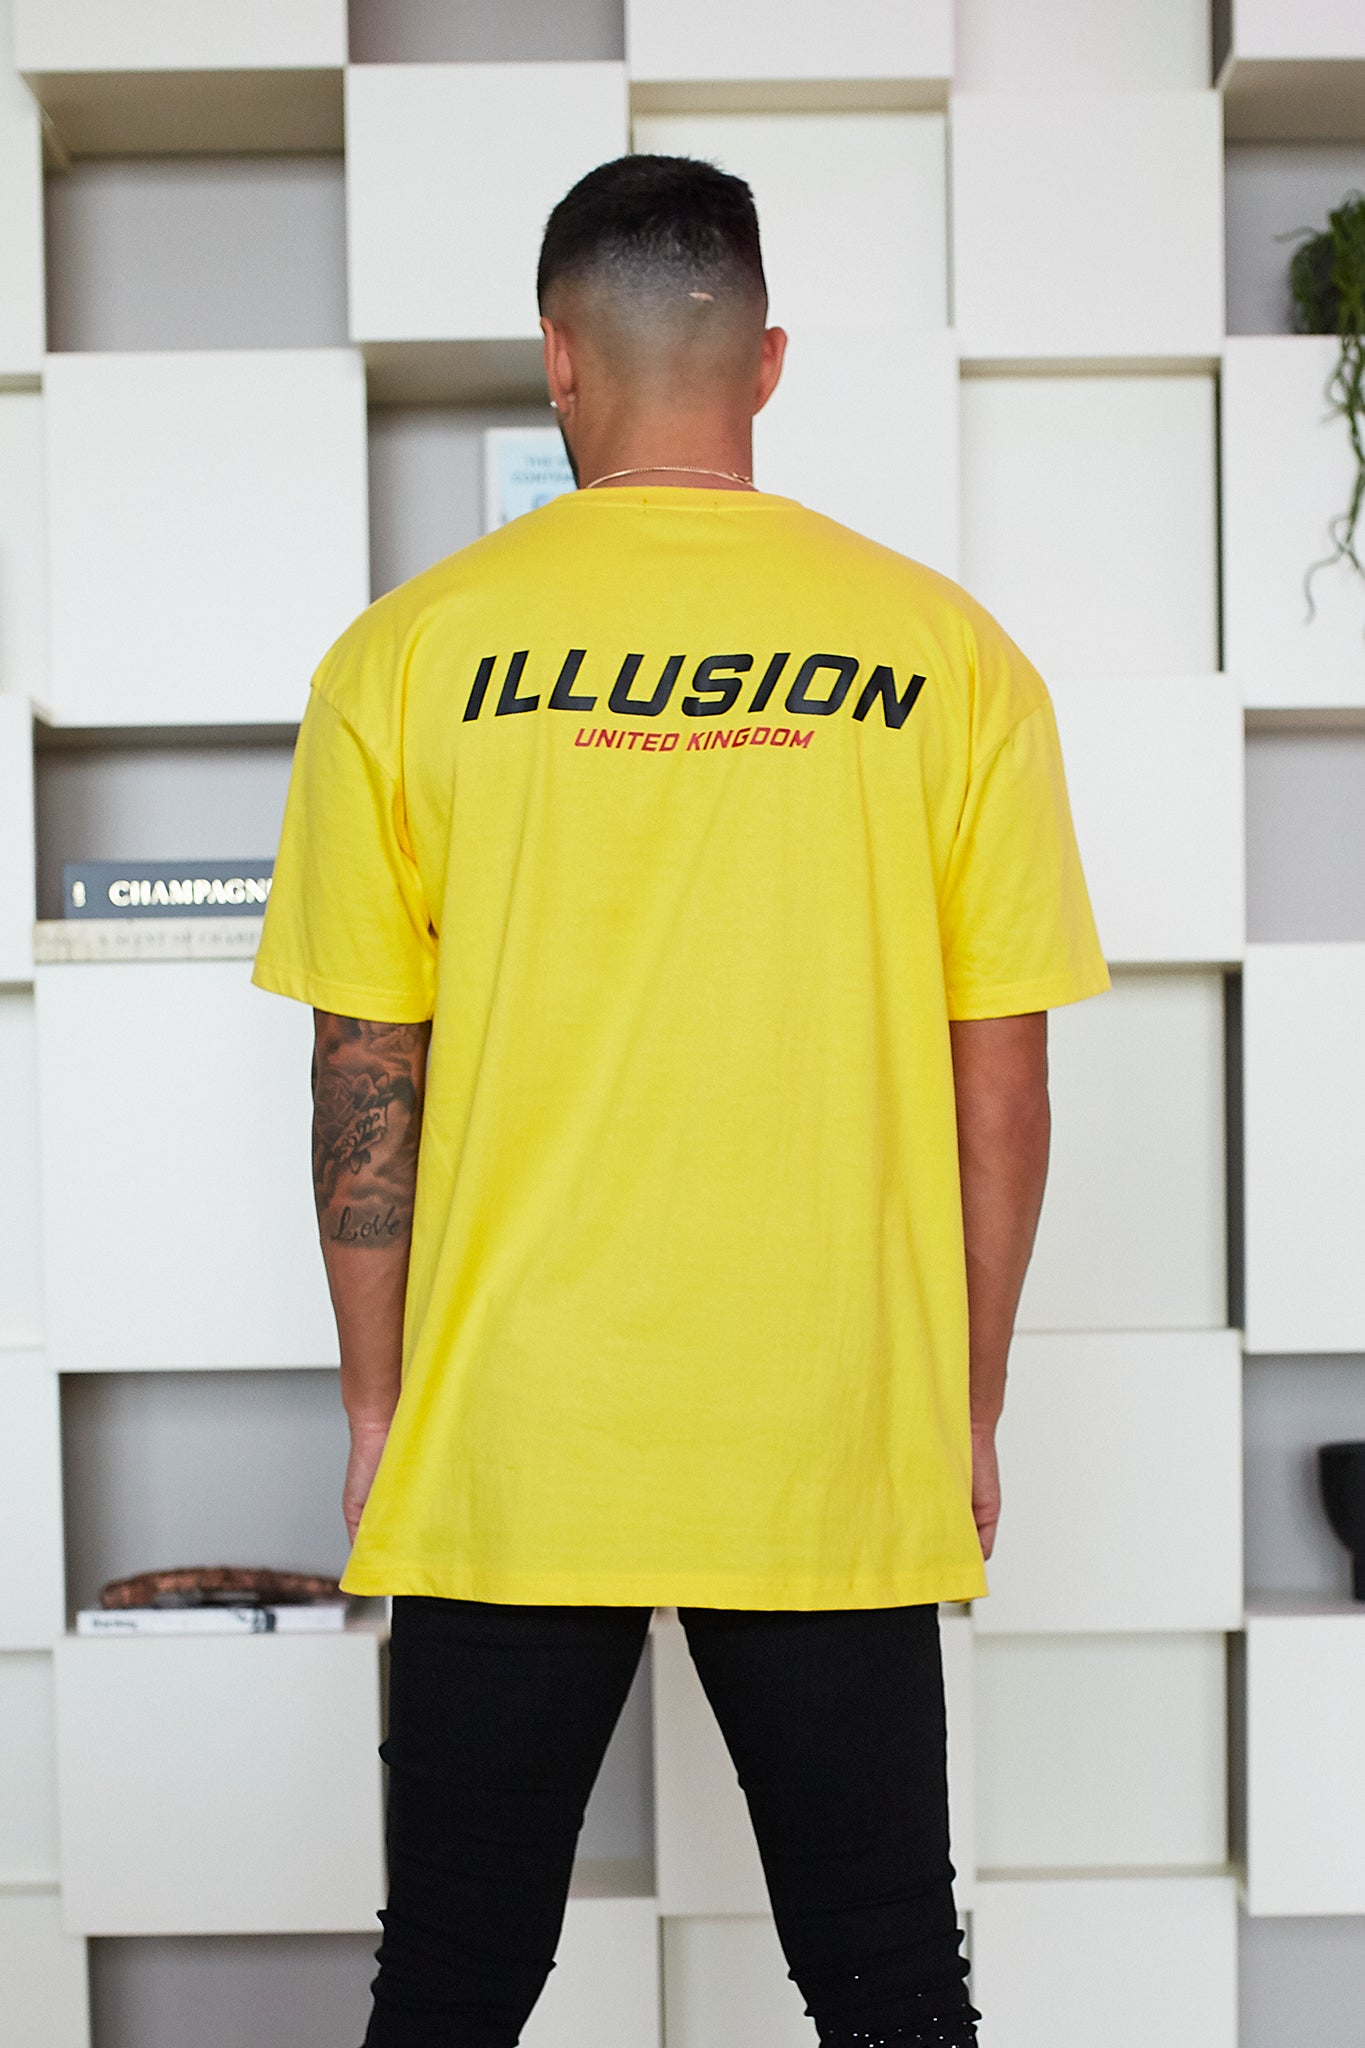 YELLOW UNITED KINGDOM T-SHIRT - Illusion Attire